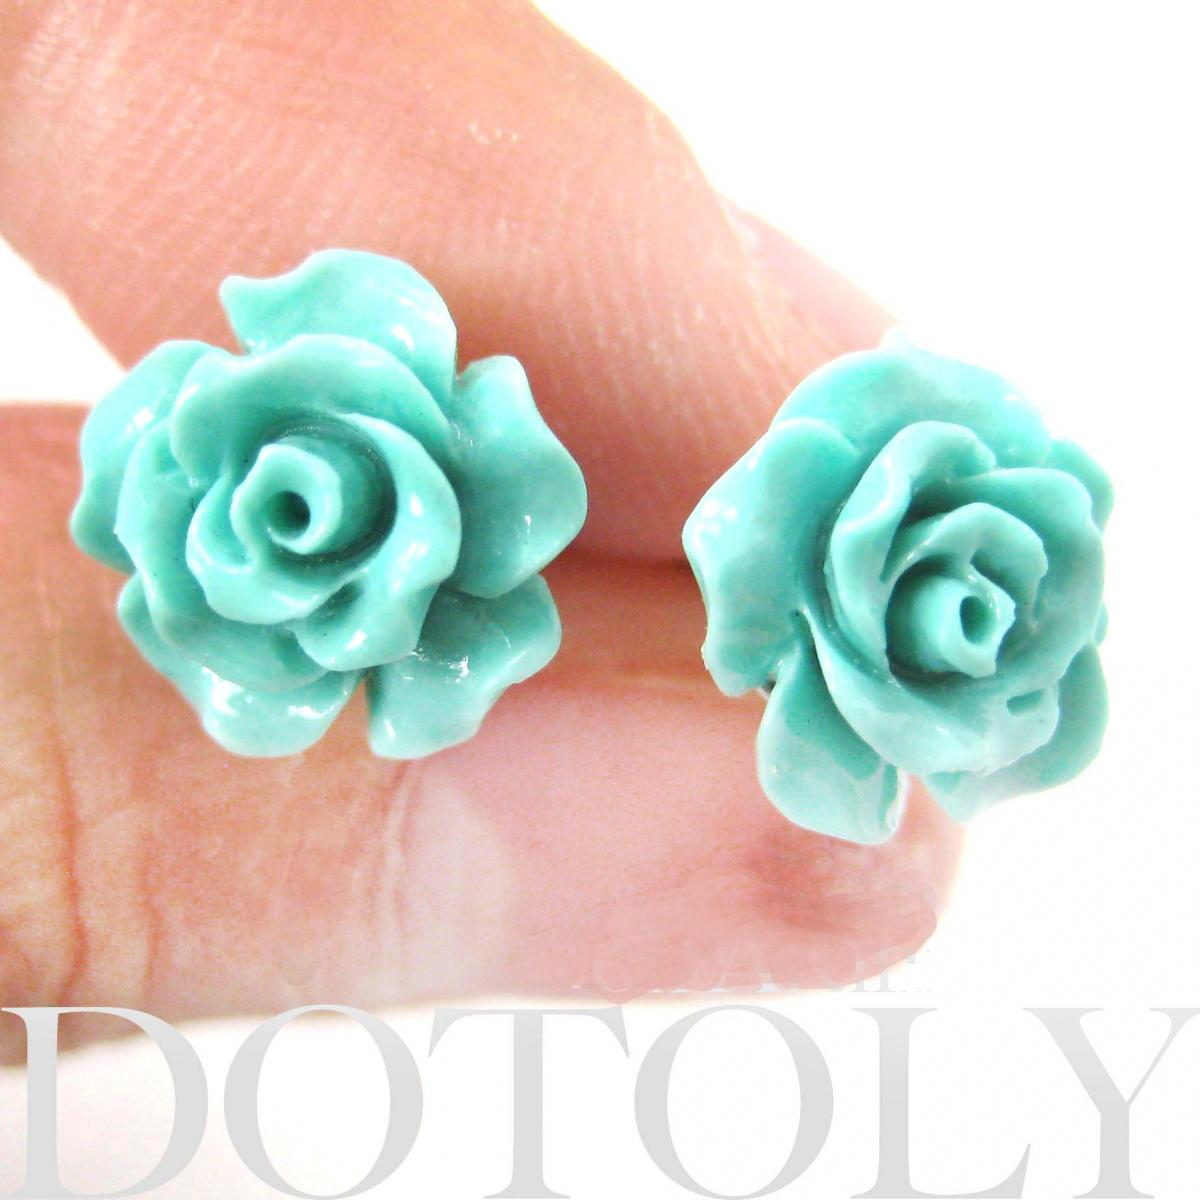 Small Floral Rose Resin Stud Earrings in Mint Blue Green